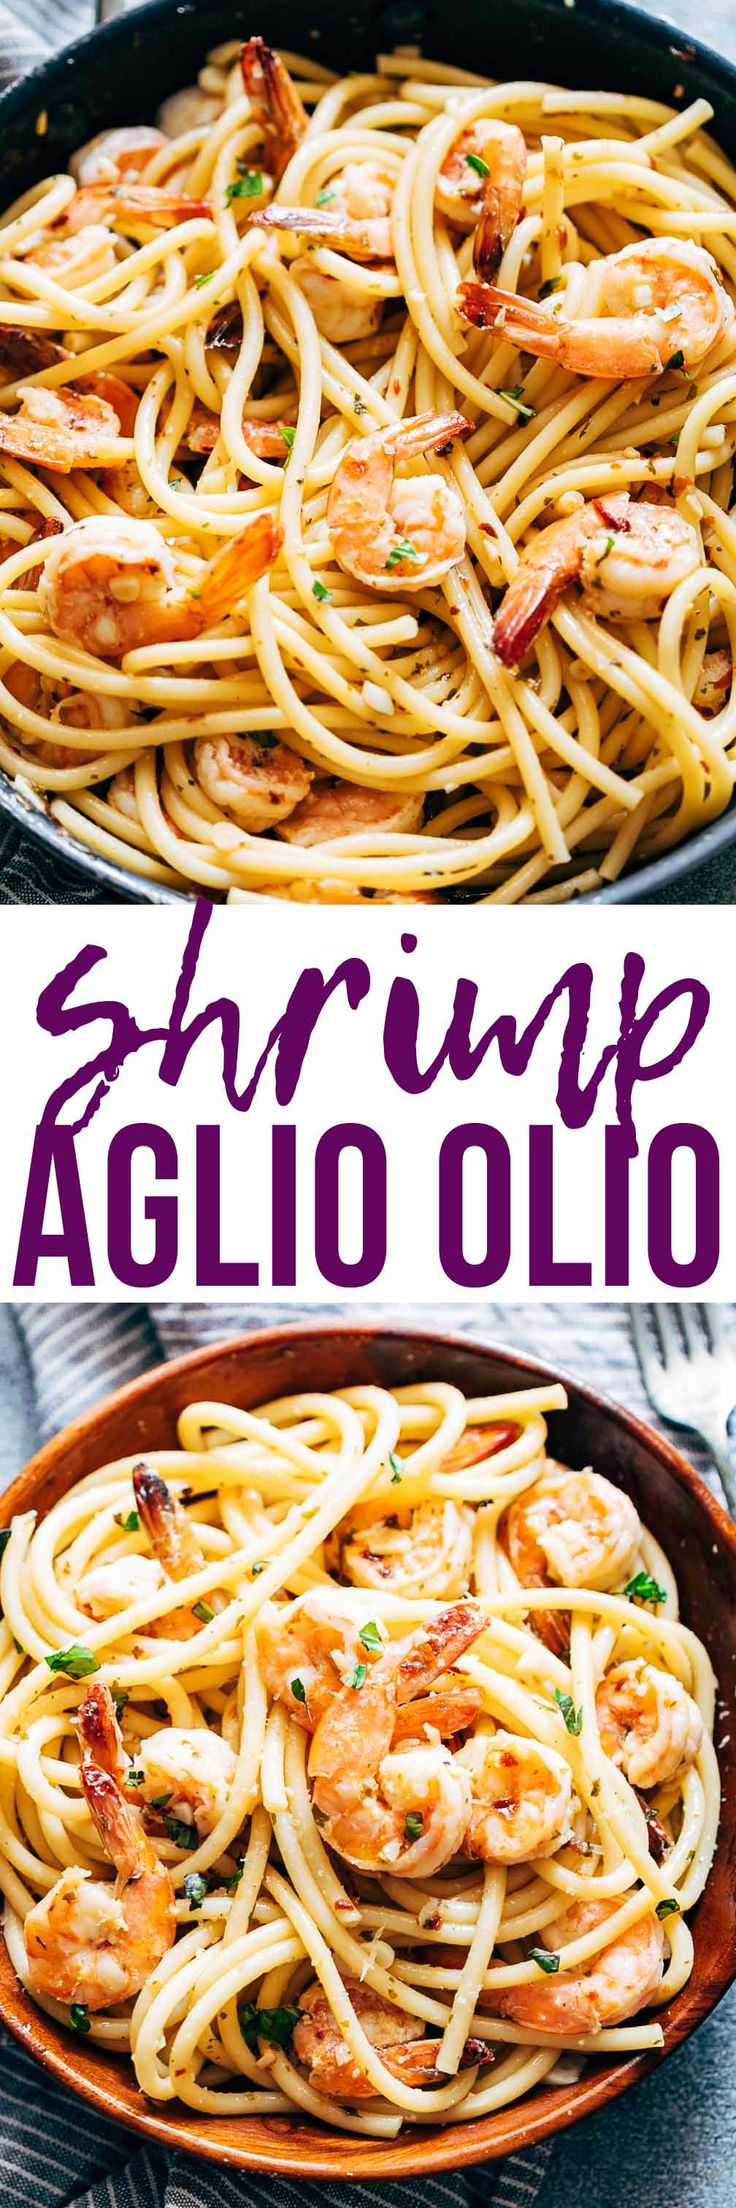 Shrimp Spaghetti Aglio Olio is a 5 ingredient pasta recipe (shrimp or prawns, olive oil, garlic, peperoncino or chilli flakes and parsley) thats ready in 20 minutes and has the easiest, most delicious pasta sauce you'll ever make! Great when you want fast dinner or easy recipes. Make this into seafood aglio olio or add bacon or mushrooms #pasta #fastrecipe #easyrecipe via @my_foodstory